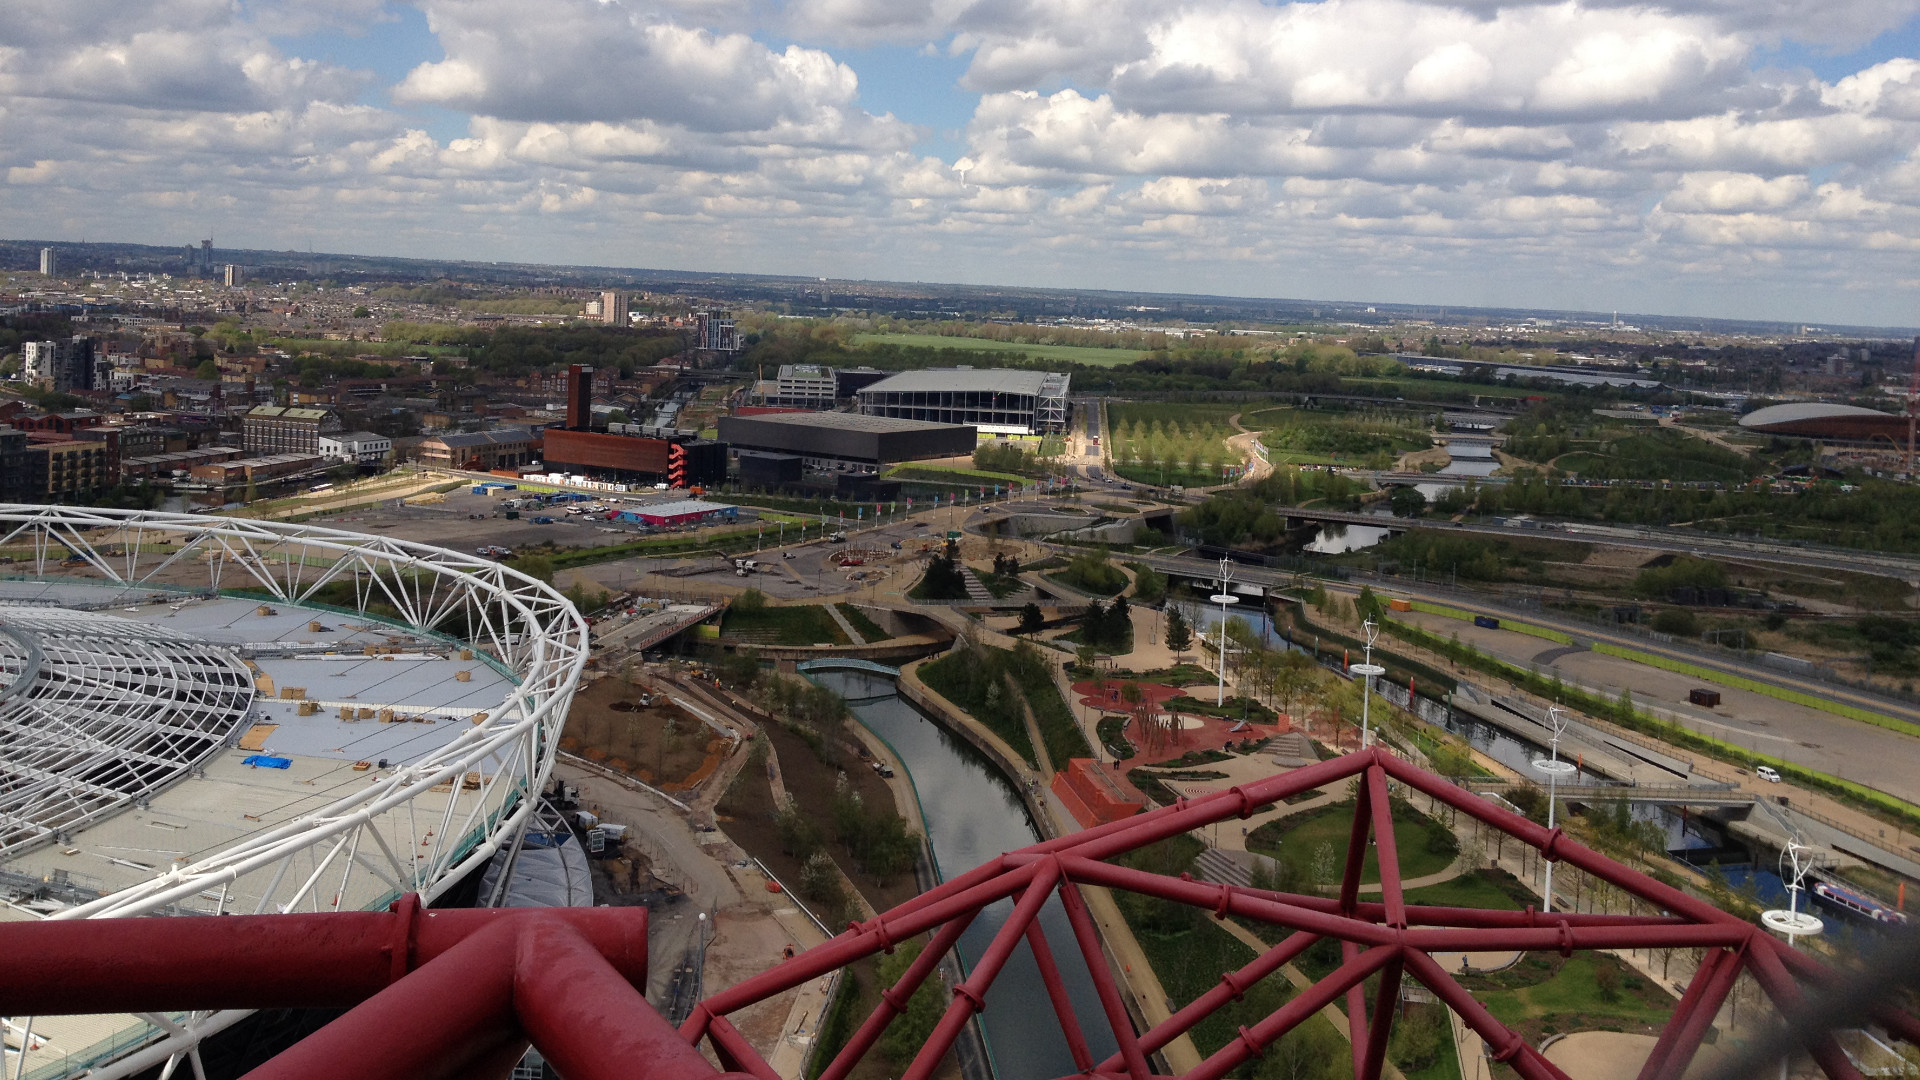 Olympic Park, London, Apr 27, 2015, by Aaron Lee, 04 Orbit Ldn view